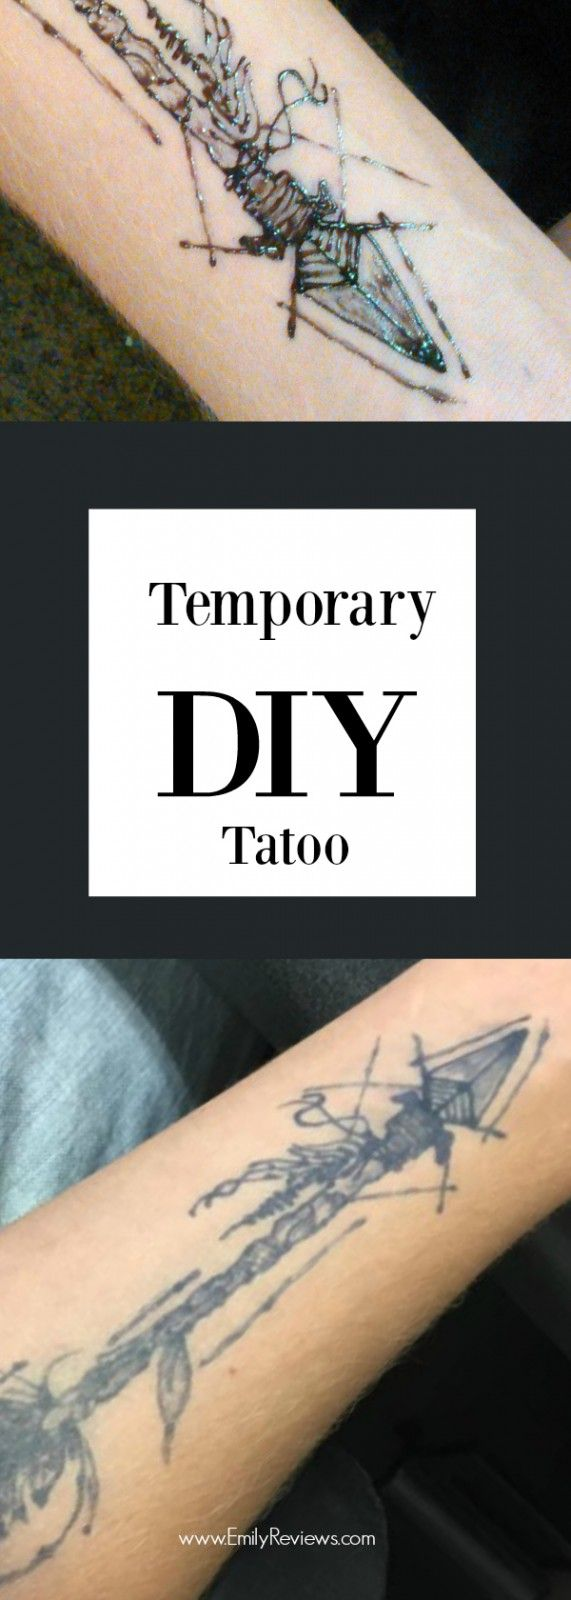 DIY TEMPORARY TATTOO using jagua NOT black henna. Beautiful way to experiment with body modification in a temporary way.